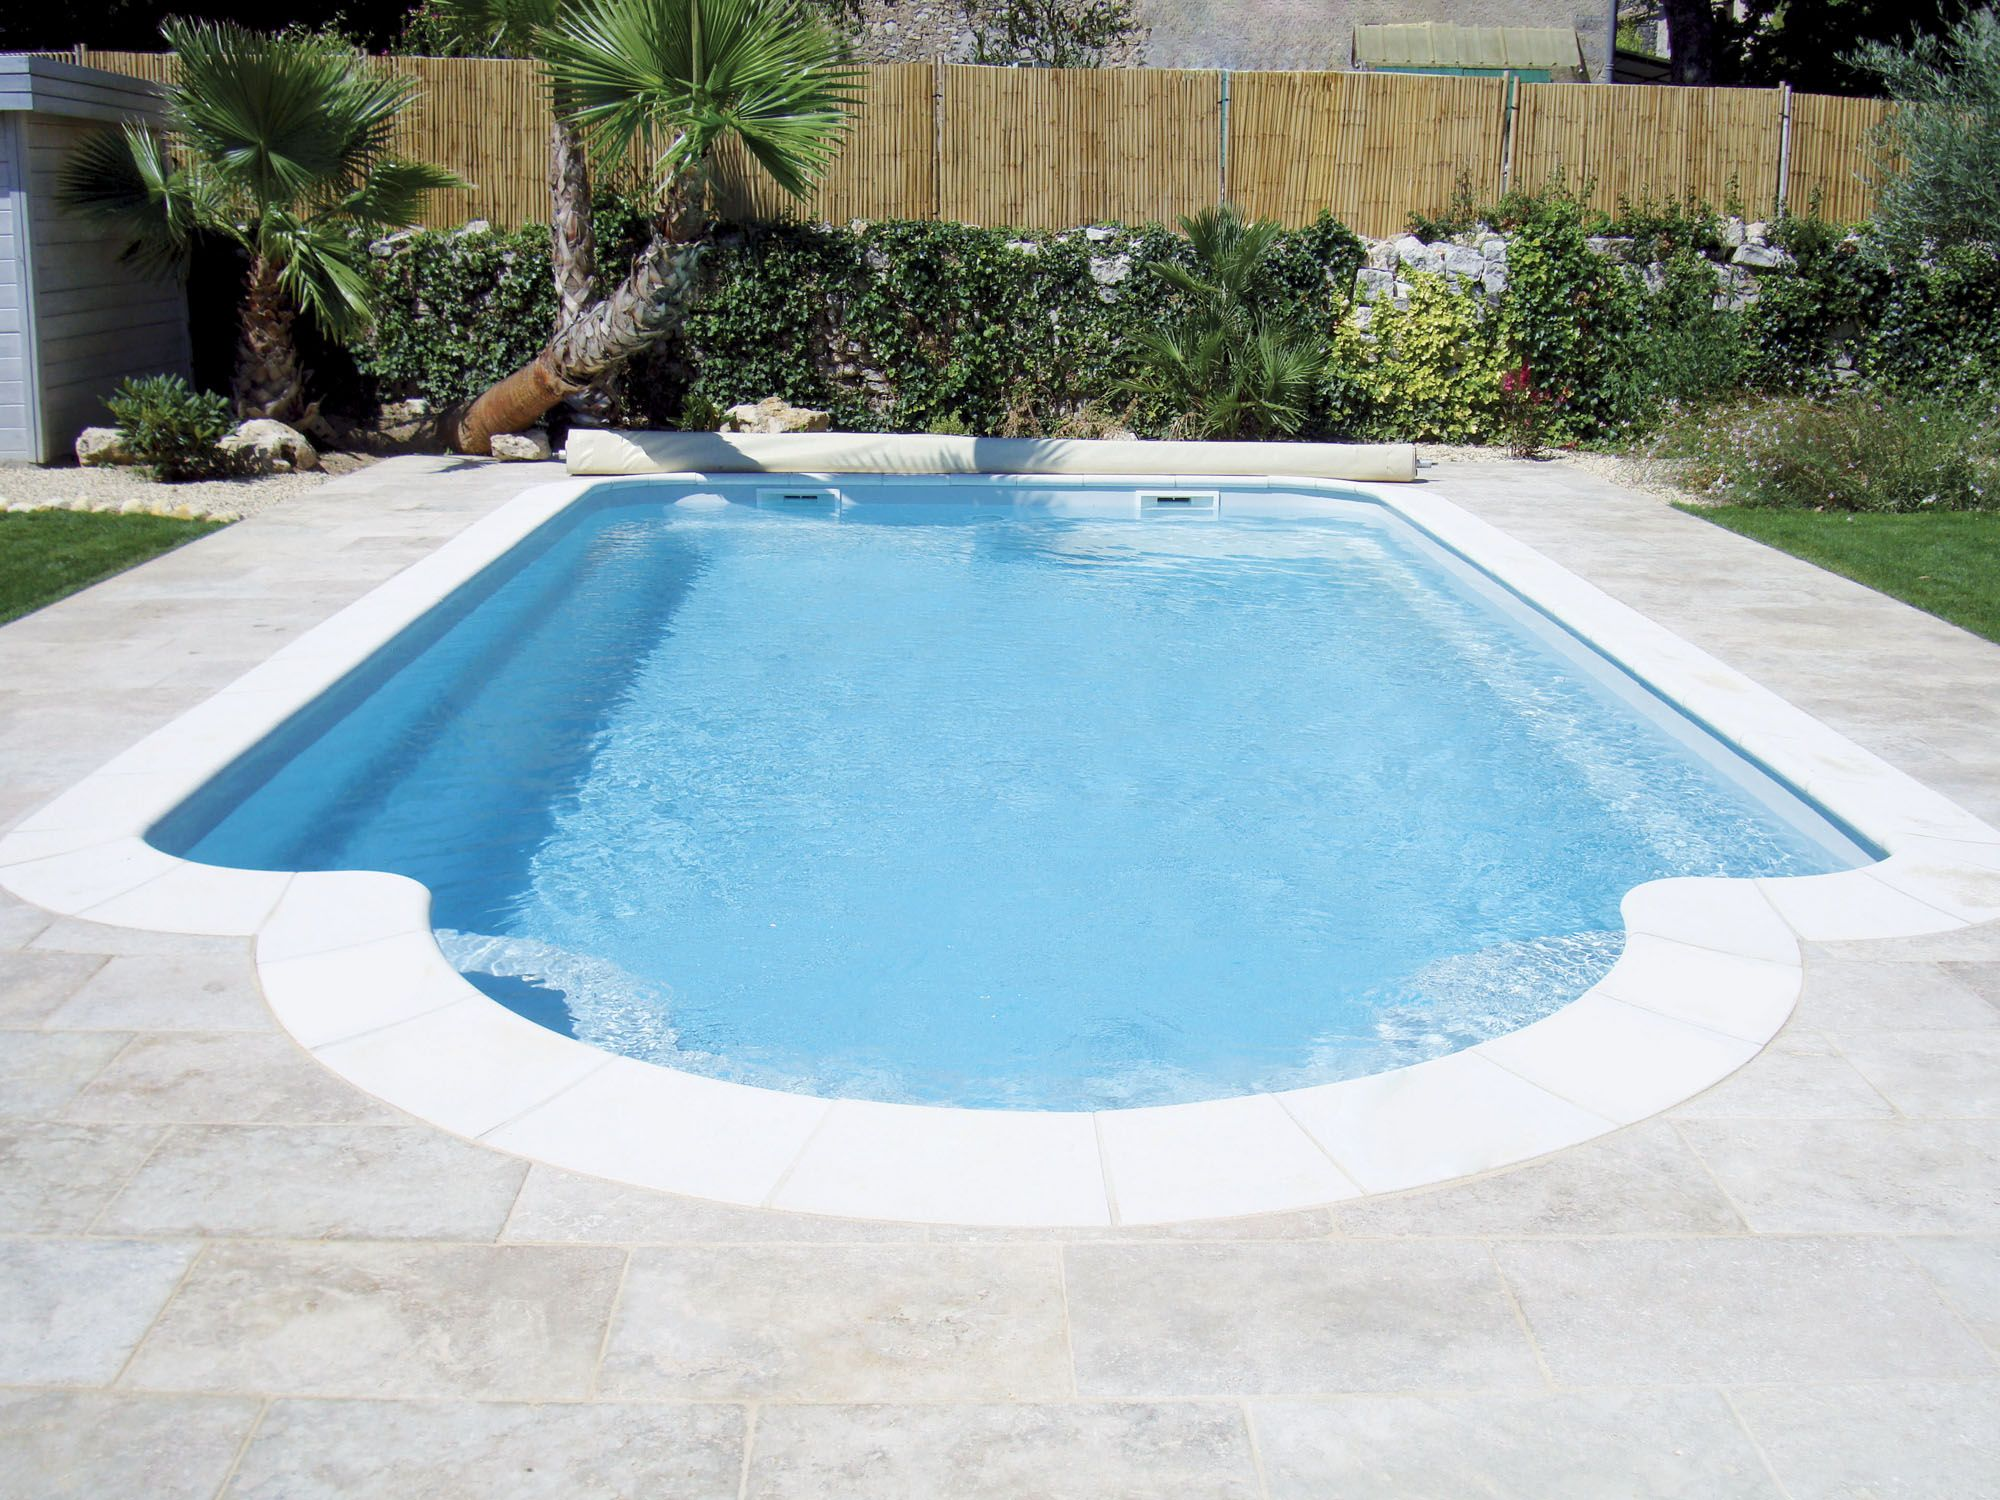 Piscine coque polyester arp ge fabrication fran aise for Piscine coque polyester d exposition